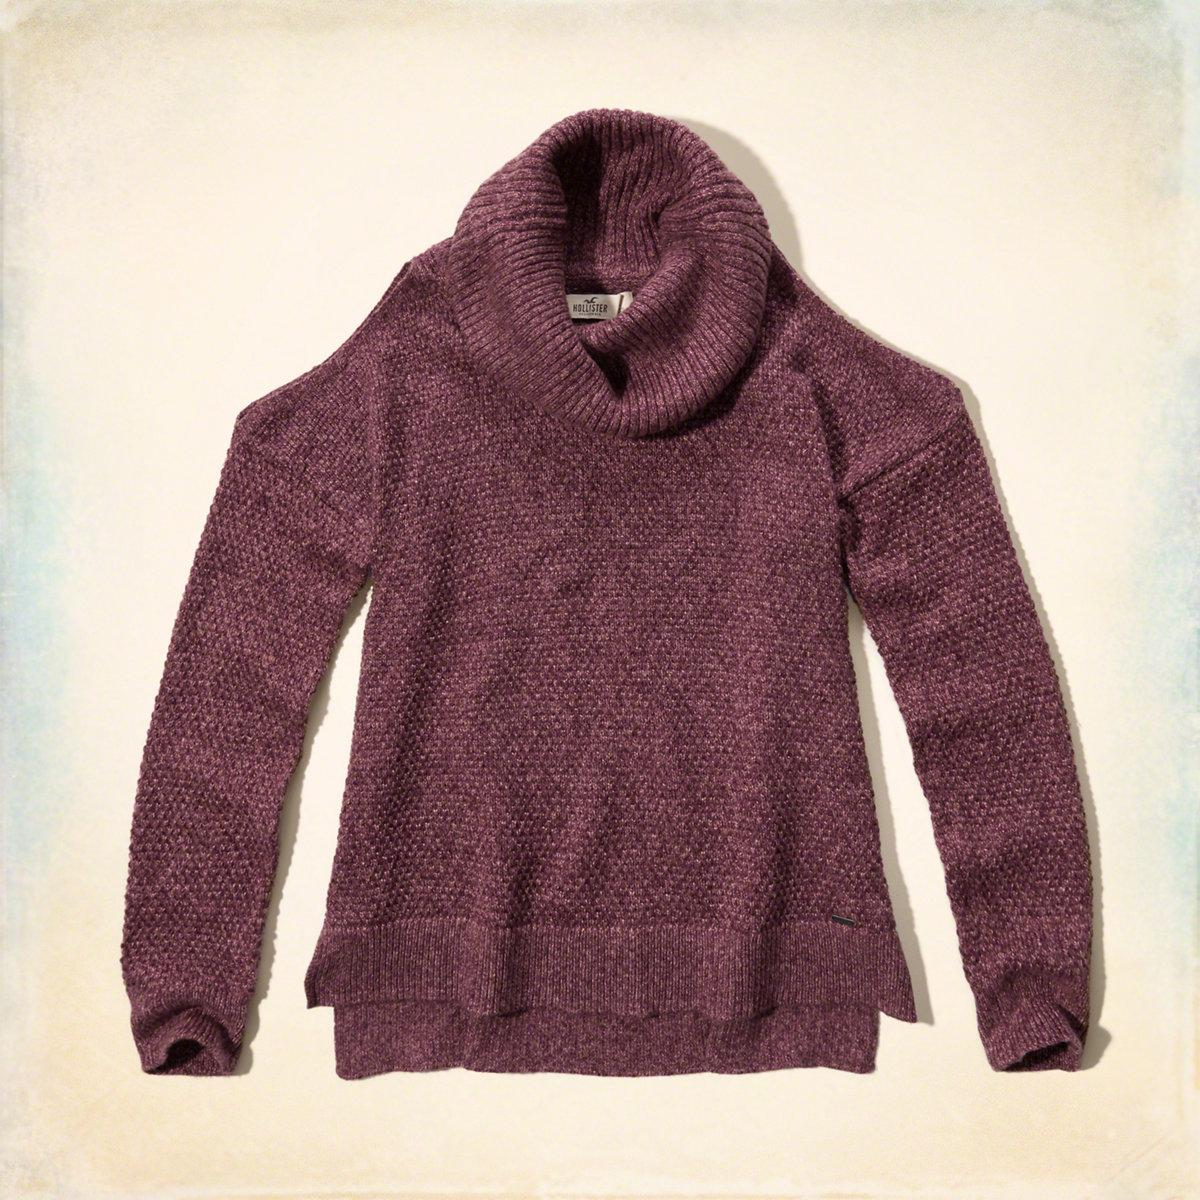 a8d63b5f46f0 Lyst - Hollister Cowl Neck Cold Shoulder Sweater in Purple